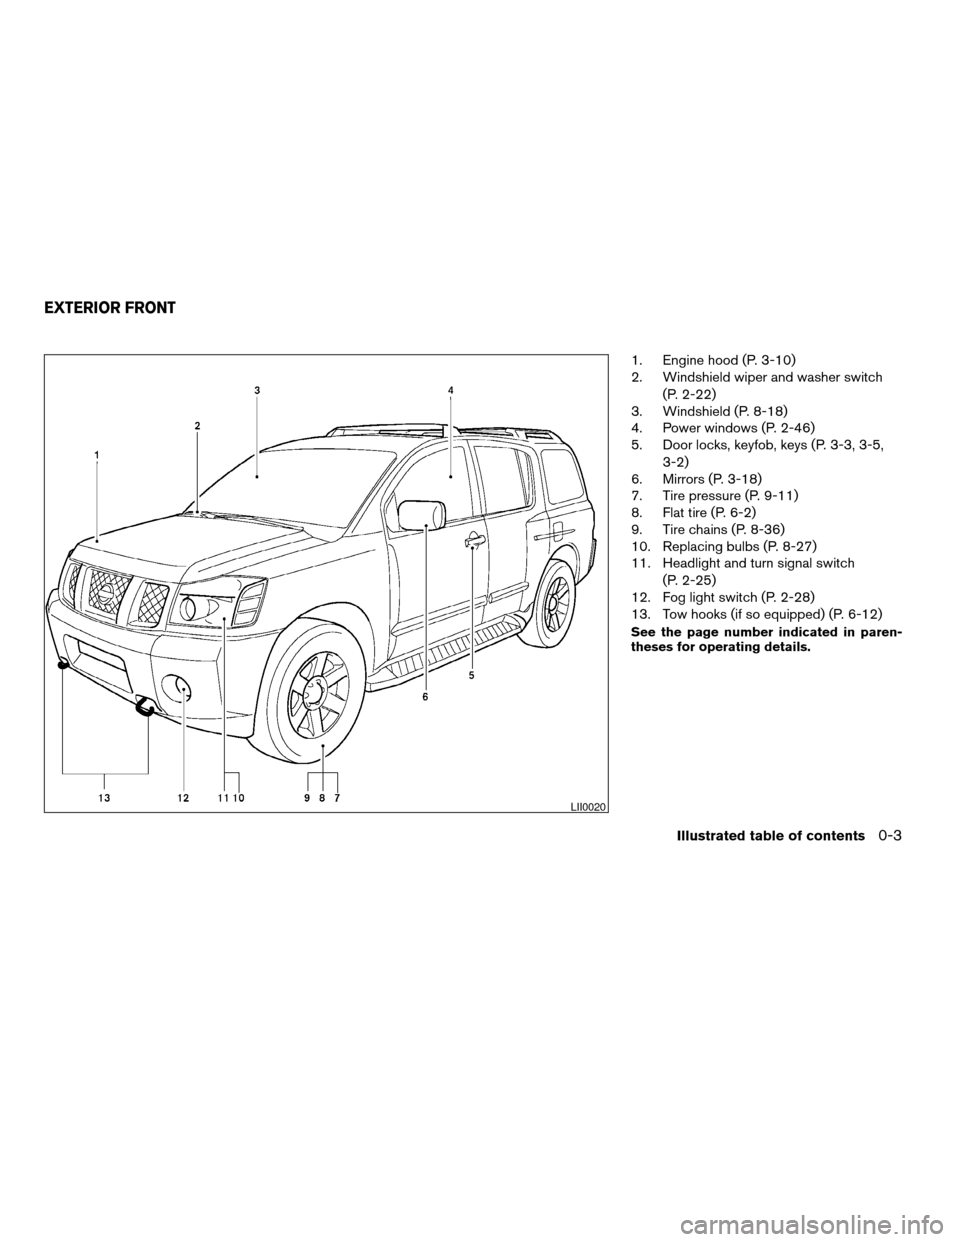 NISSAN ARMADA 2004 1.G Owners Manual